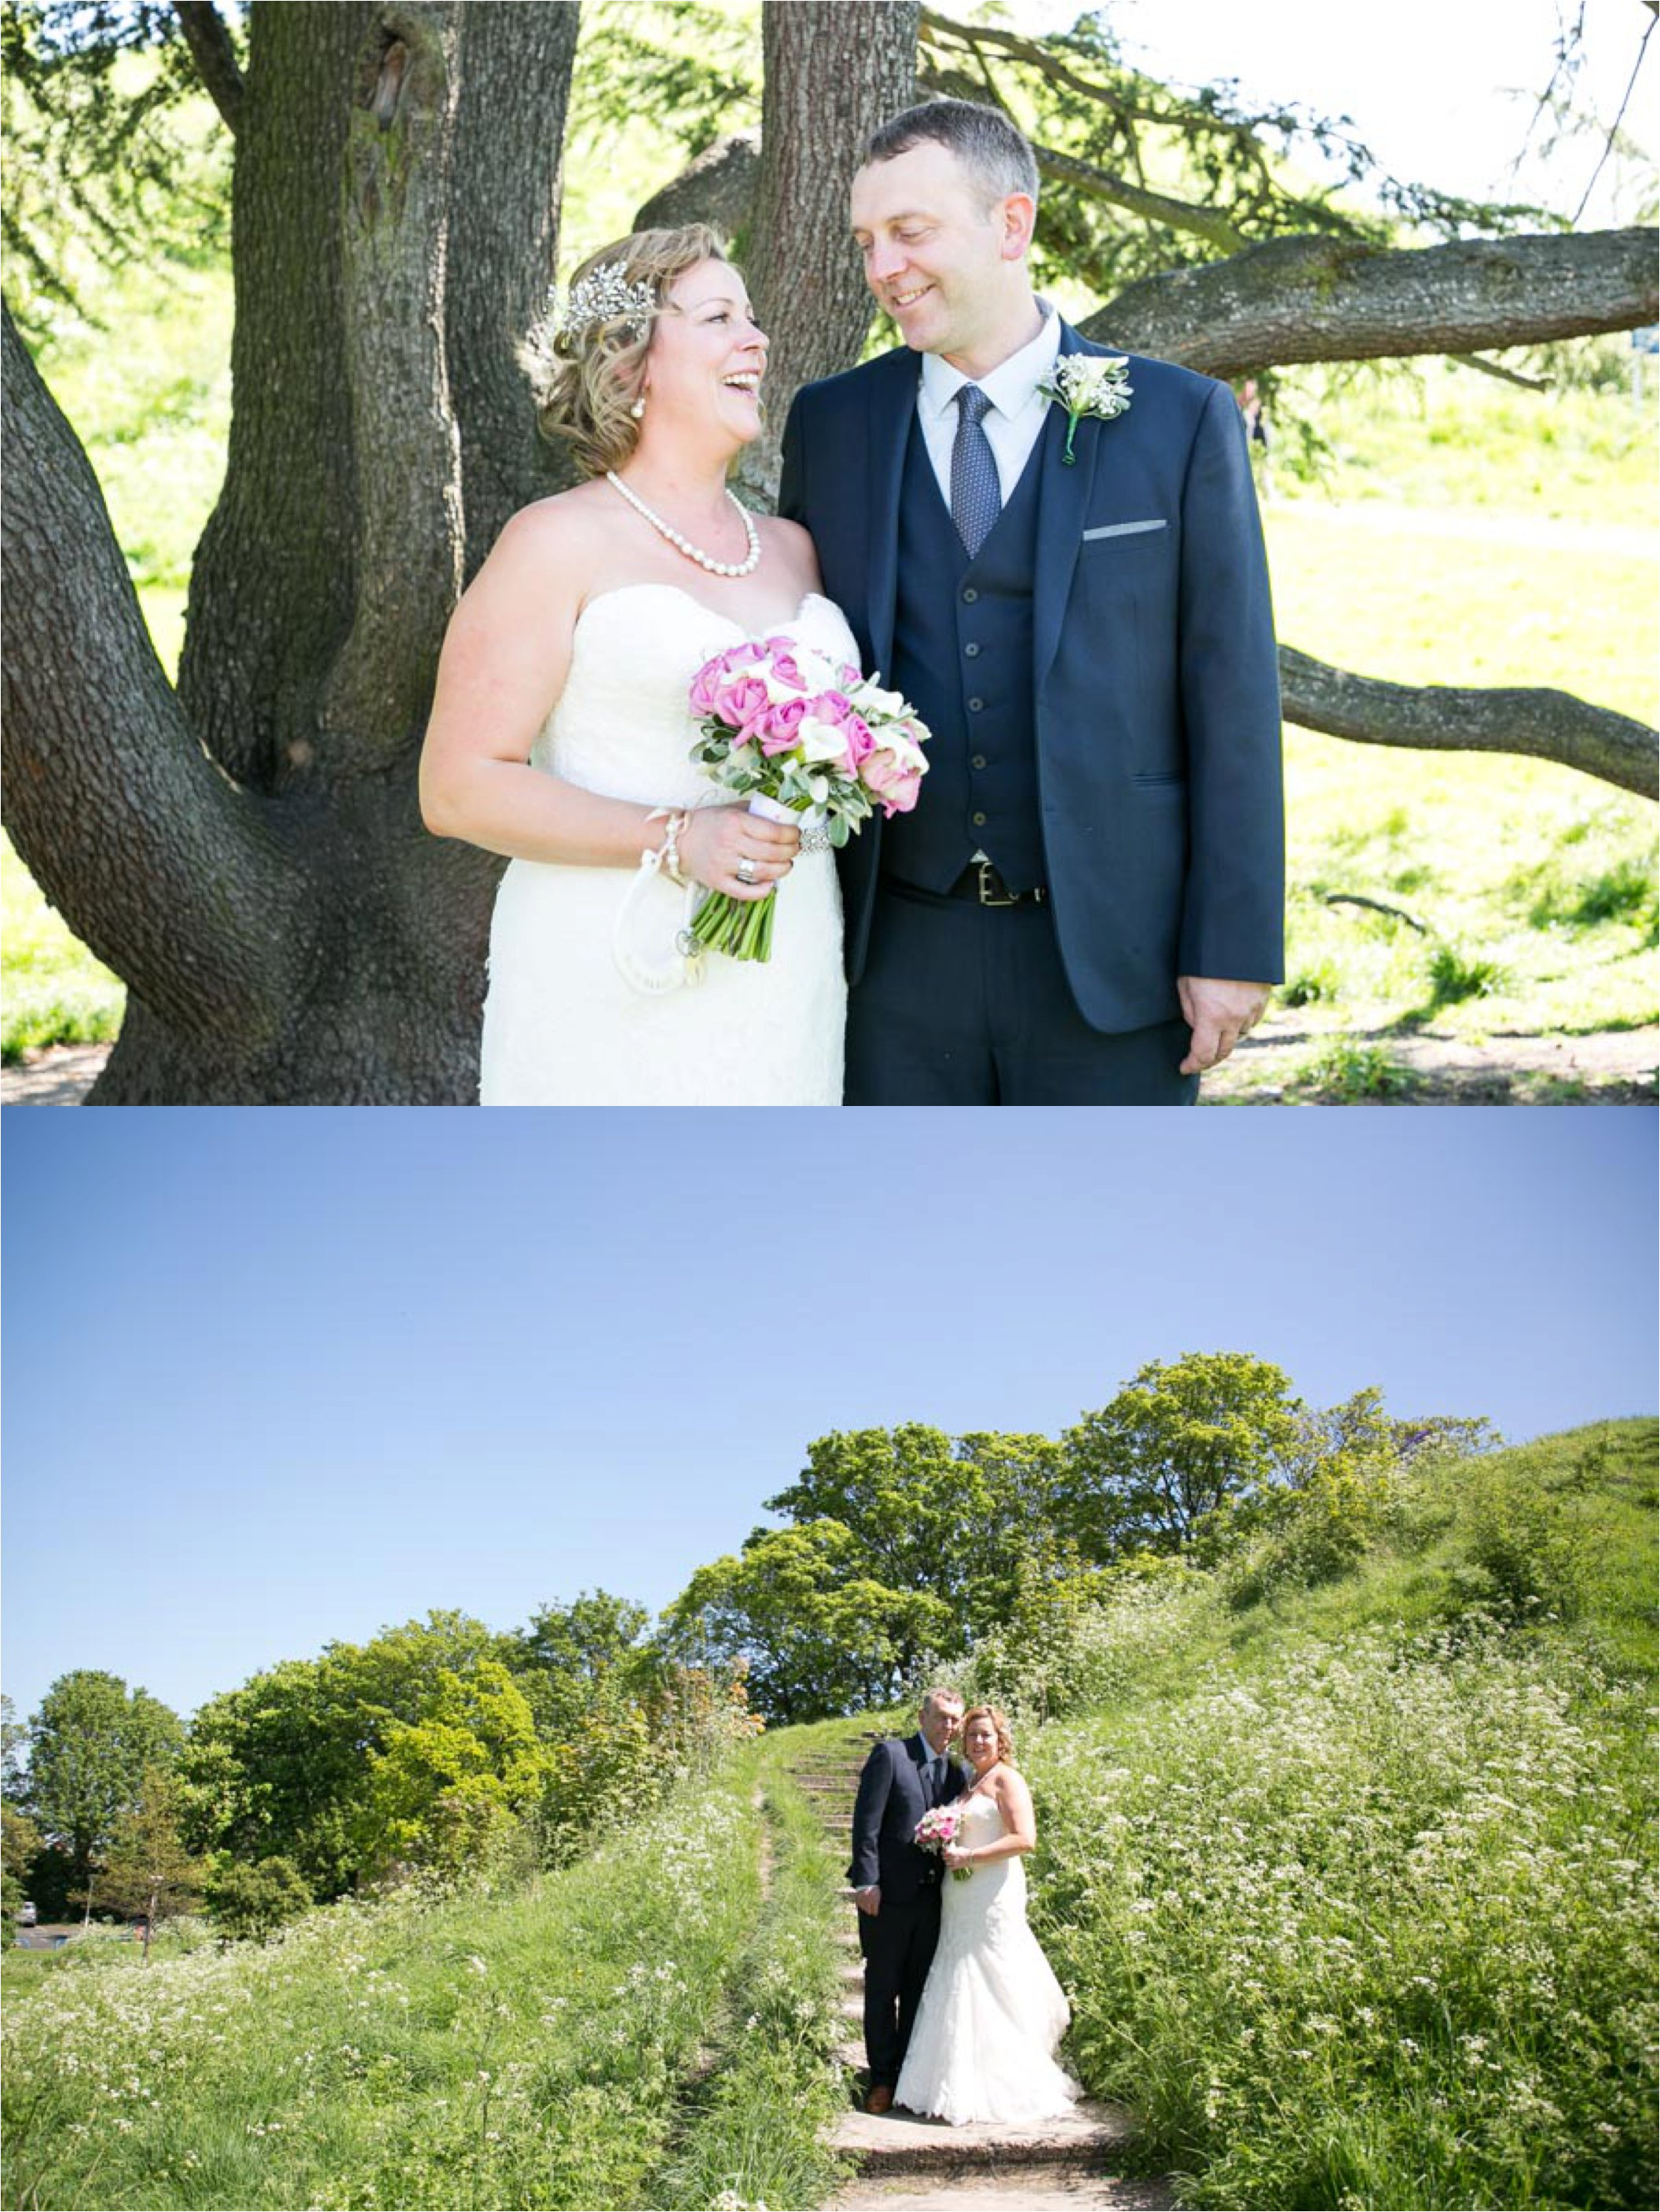 sunny intimate wedding photography at shire hall cambridge